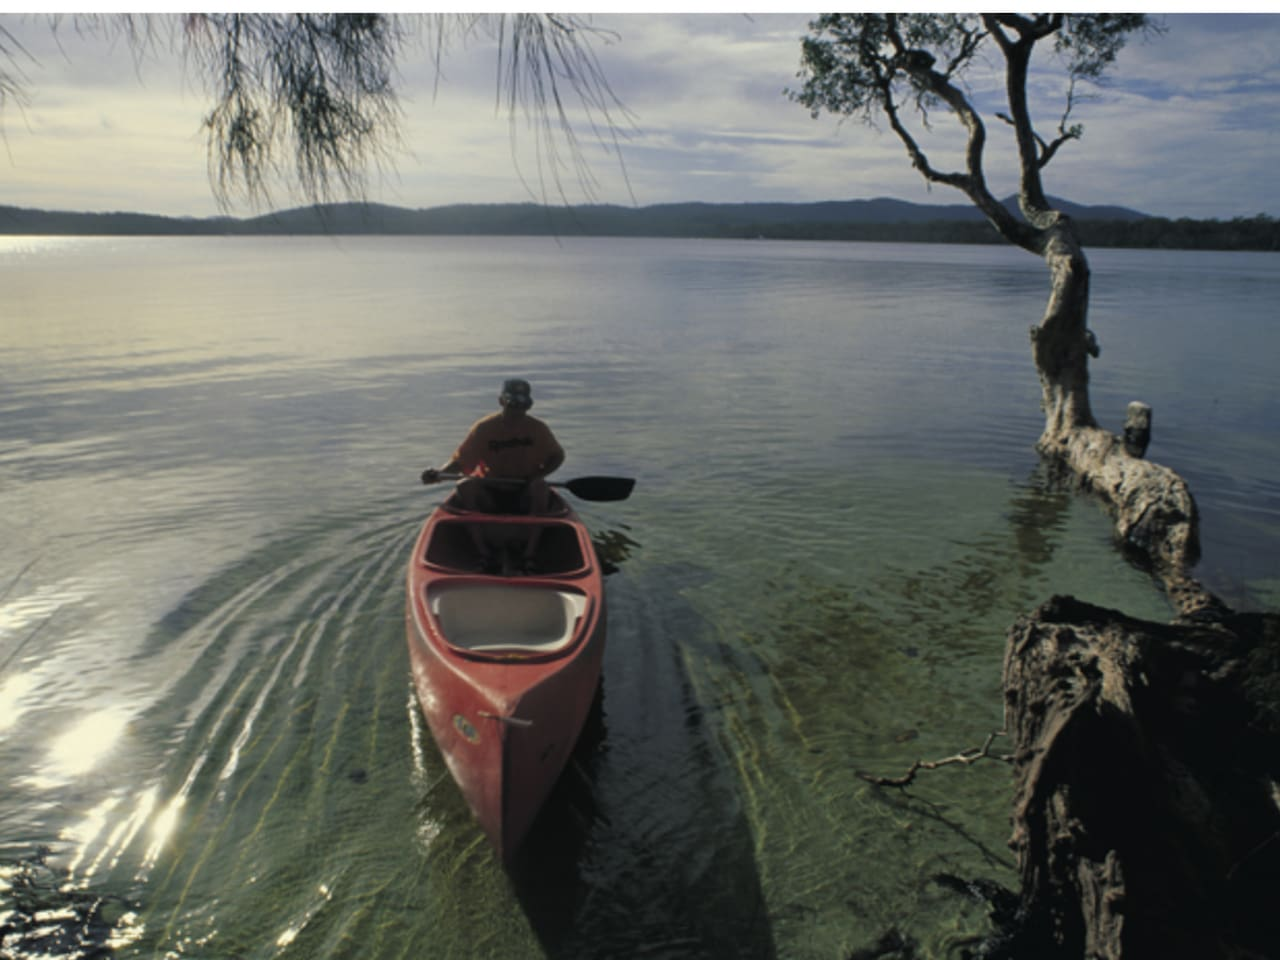 The Nerong Boat ramp is about 200 metres away from our house. It provides easy access to the amazing Myall Lakes , where you can enjoy the peace and serenity on your own personal watercraft, whether it be a canoe, kayak, SUP, waterskiing or speedboat